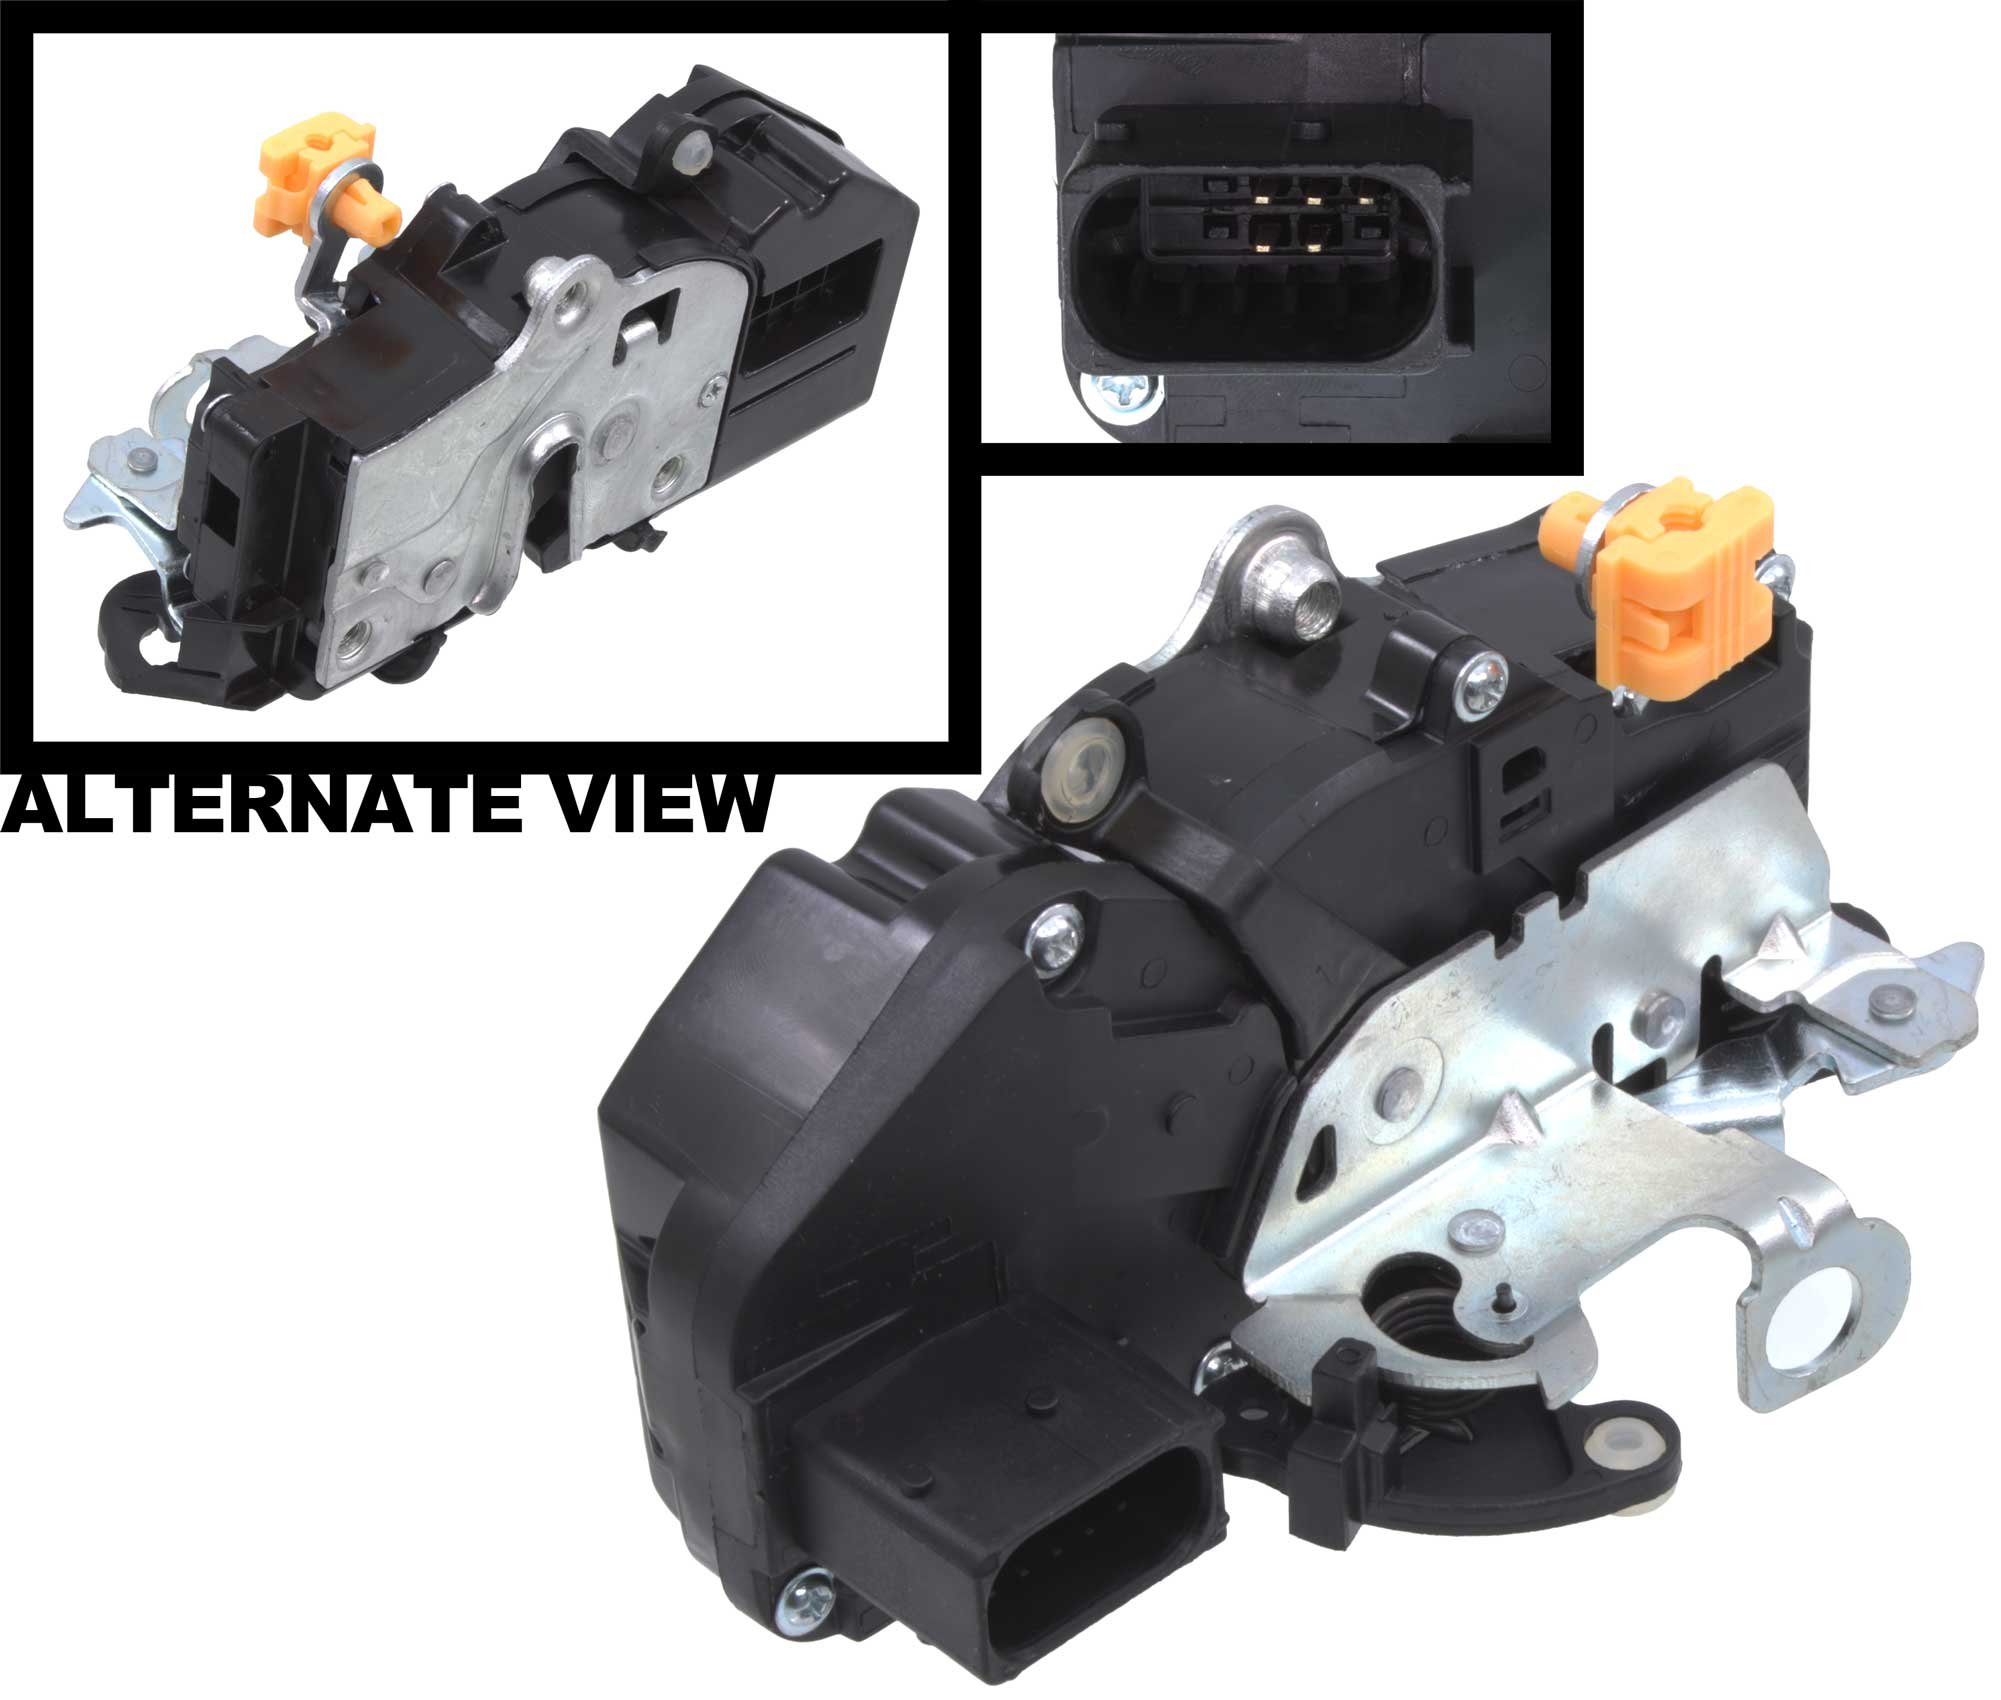 APDTY 042414 Door Latch & Lock Actuator Motor Assembly Fits Front Left (Driver Side Front) 07-09 Escalade, Avalanche, Silverado, Suburban, Tahoe, Sierra & Yukon (Replaces 15880052, 15889954, 20783846) by APDTY